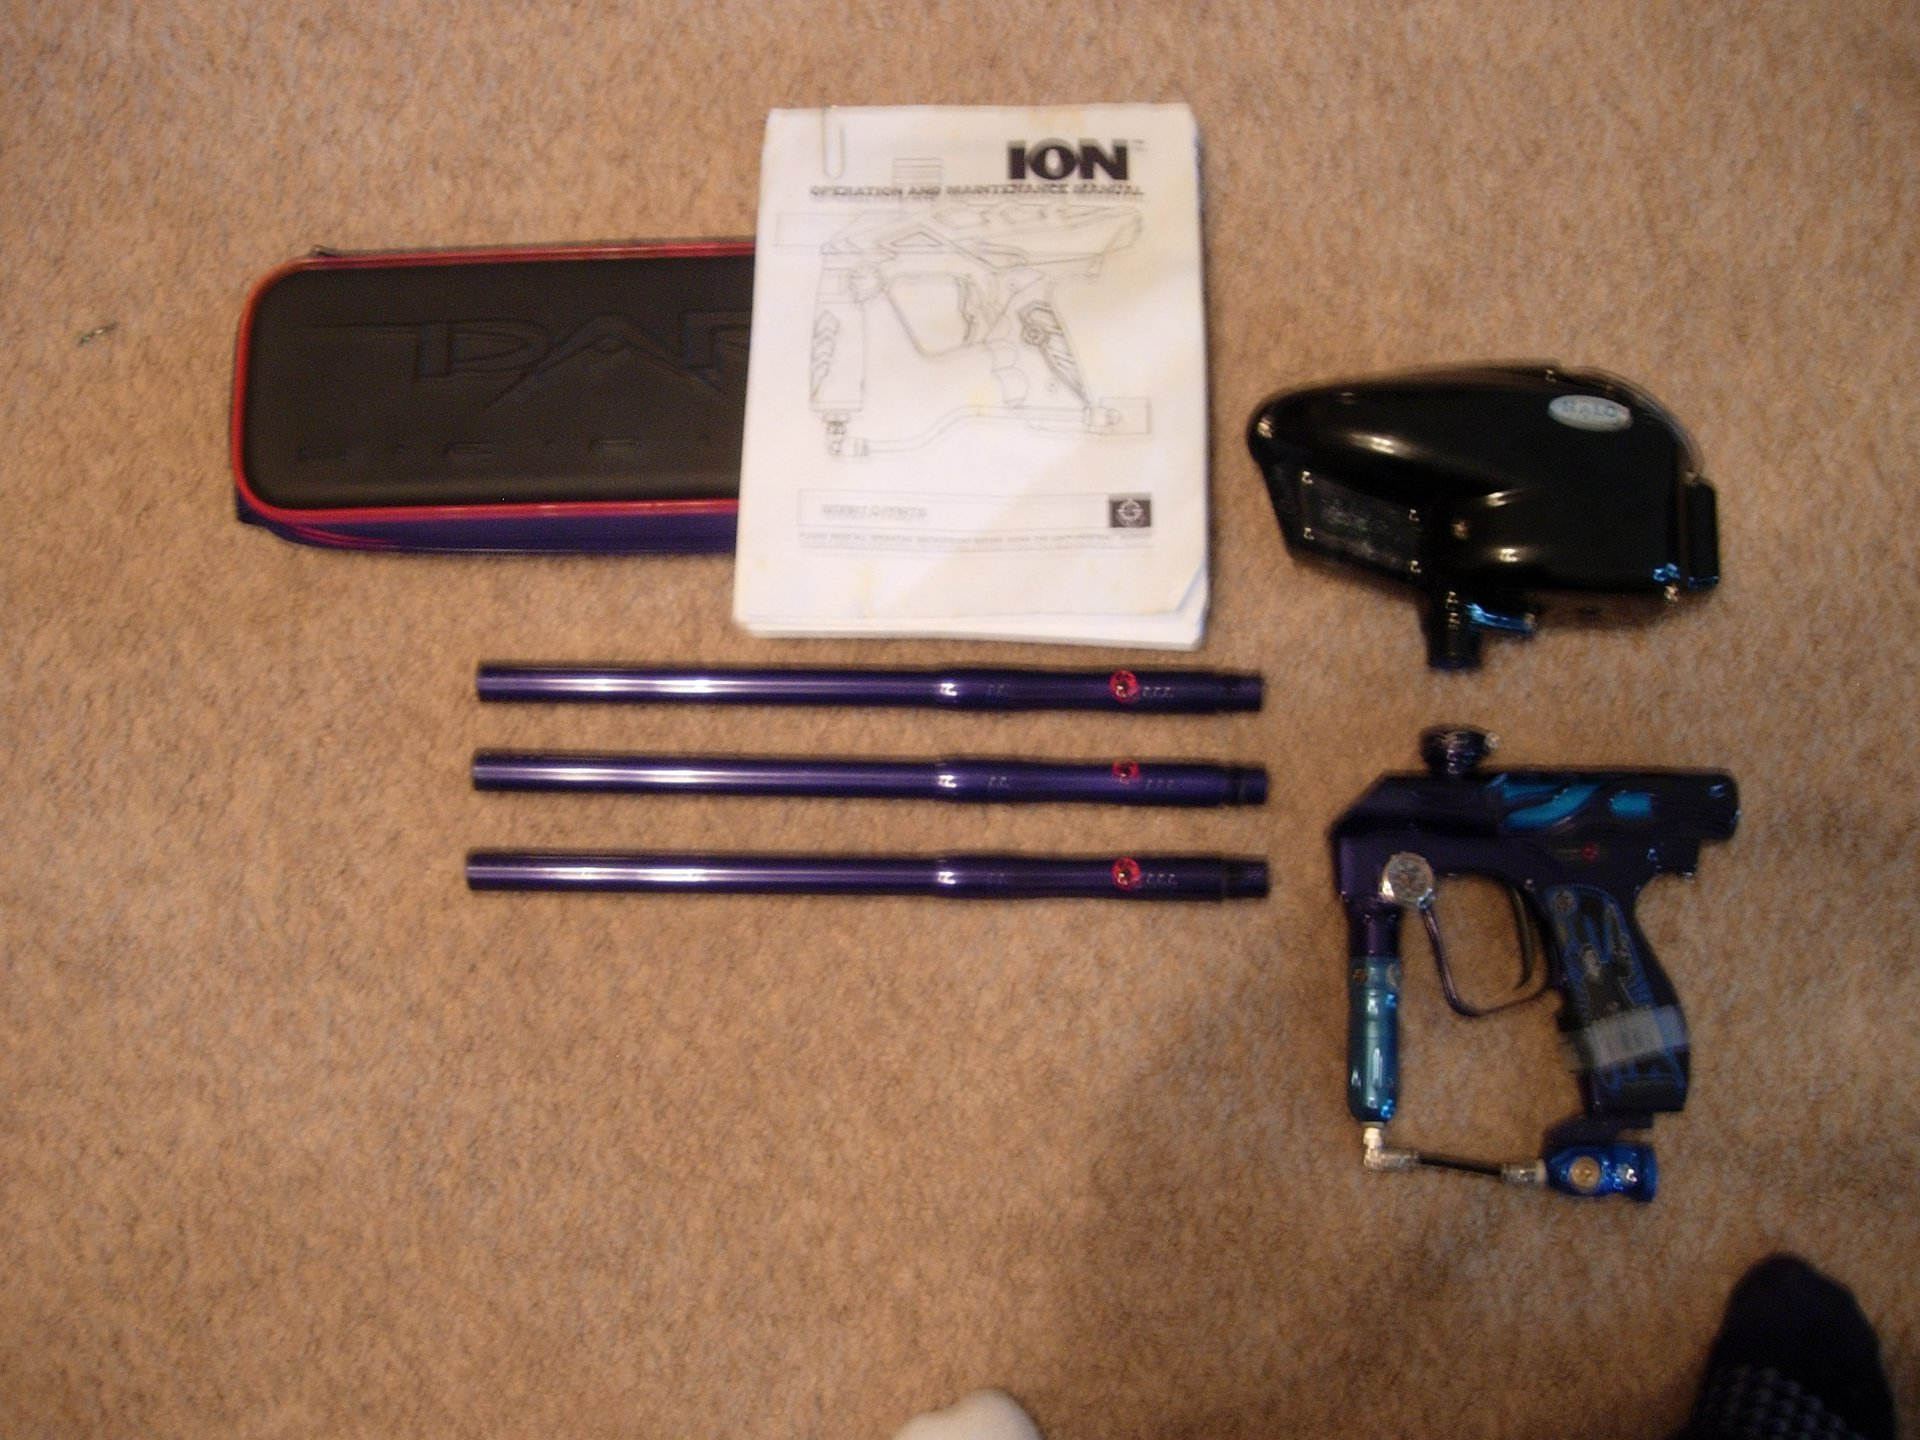 Includes barrel case and ion manual